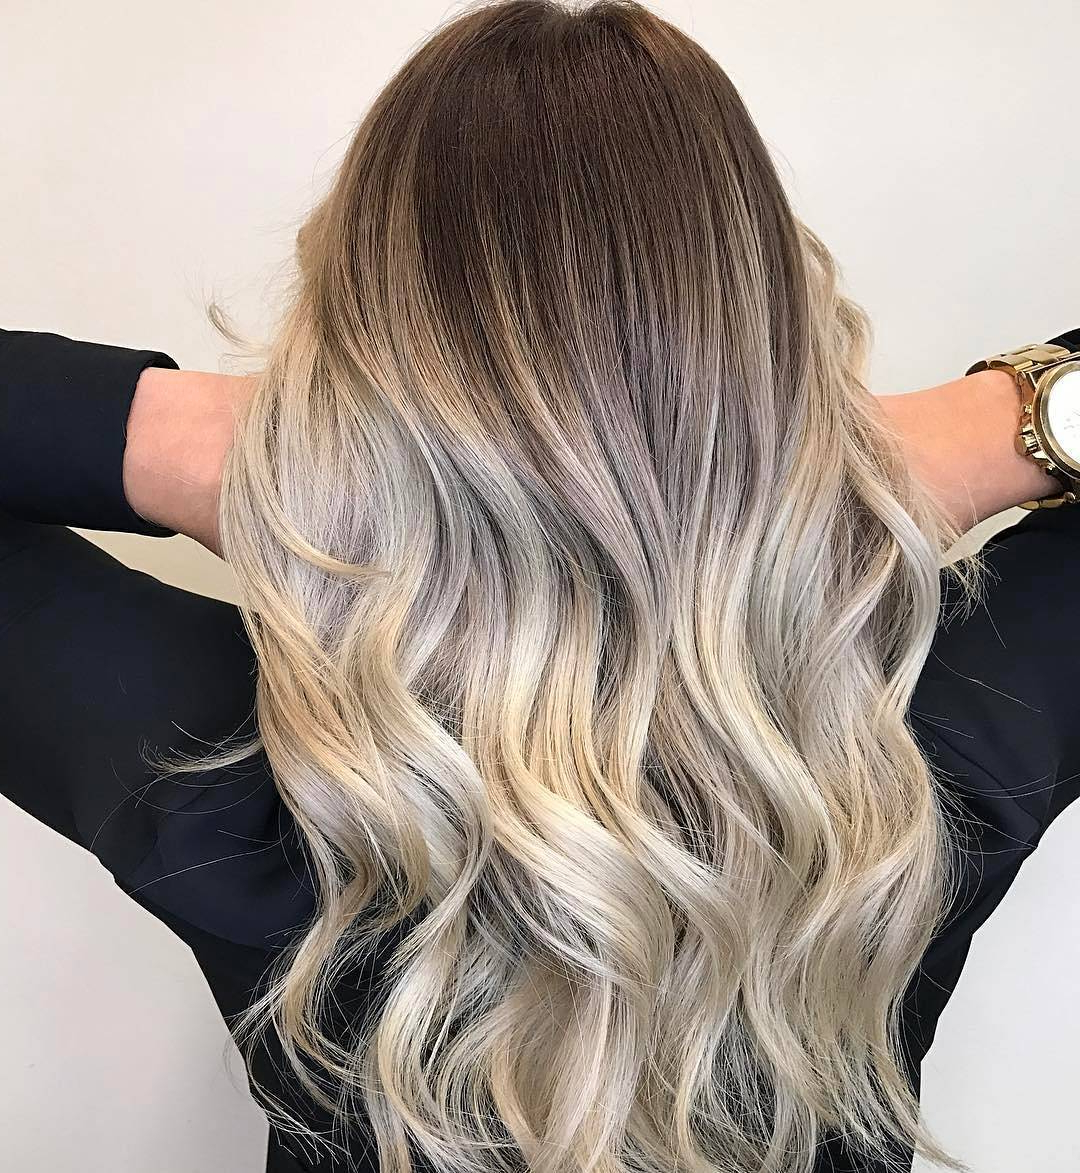 Balayage Hair: 15 Beautiful Highlights For Blonde, Red Or Inside Pixie Hairstyles With Red And Blonde Balayage (View 18 of 20)